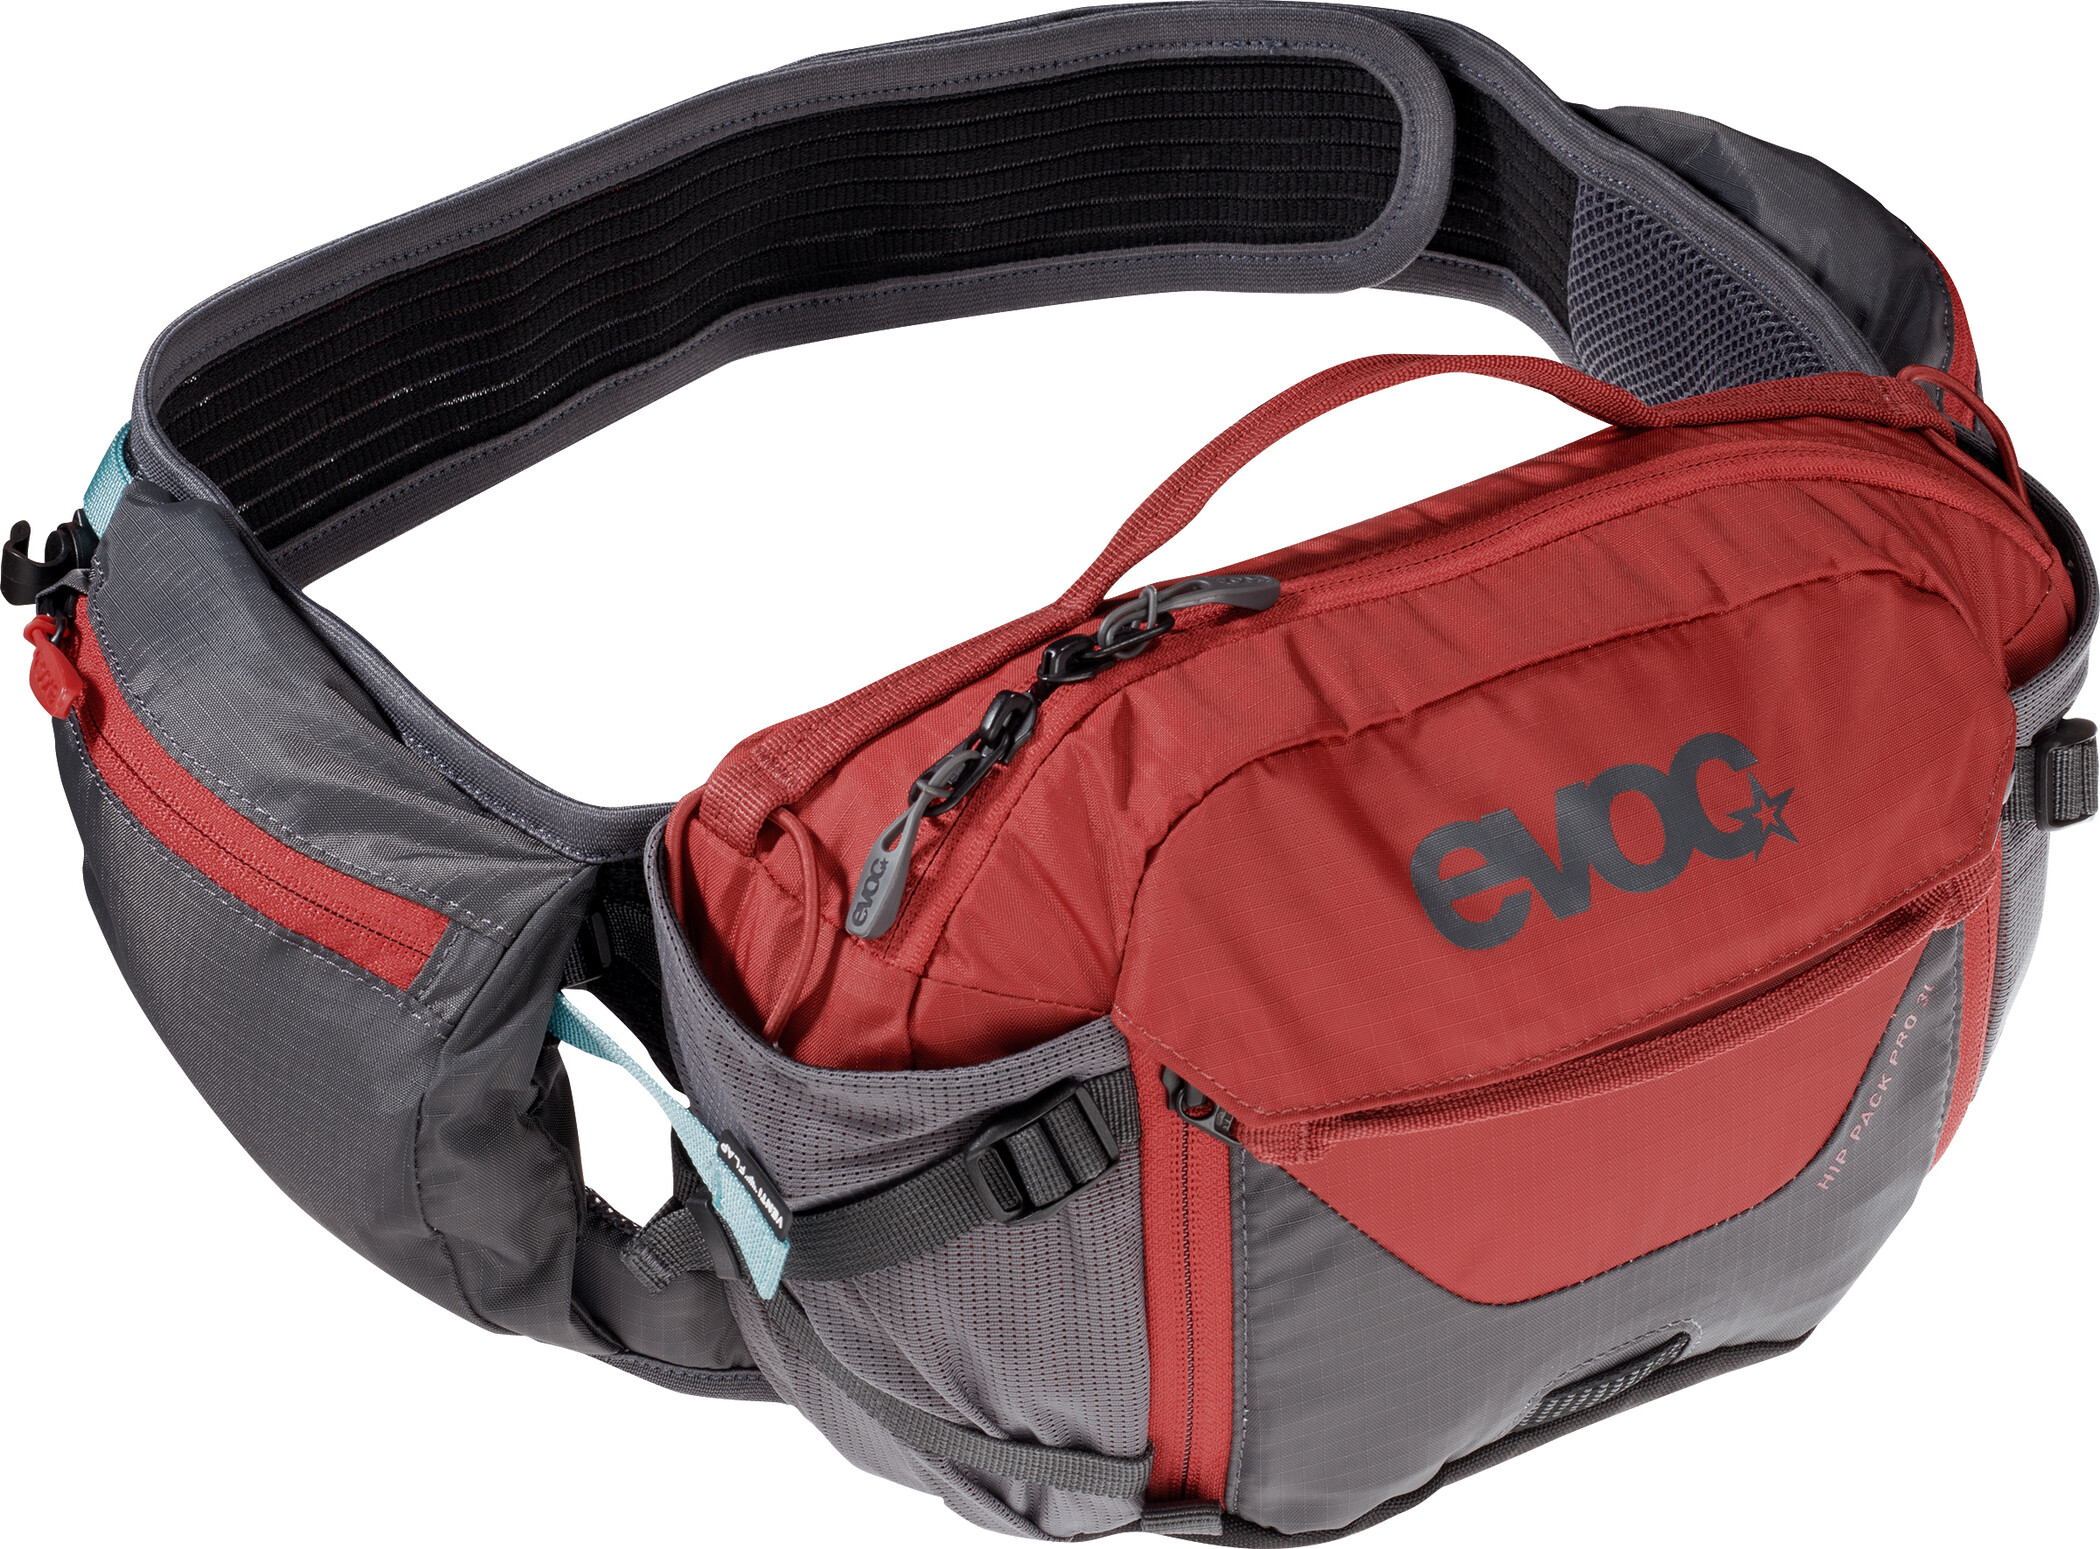 EVOC Hip Pack Pro medium, carbon grey/chili red | Waist bags